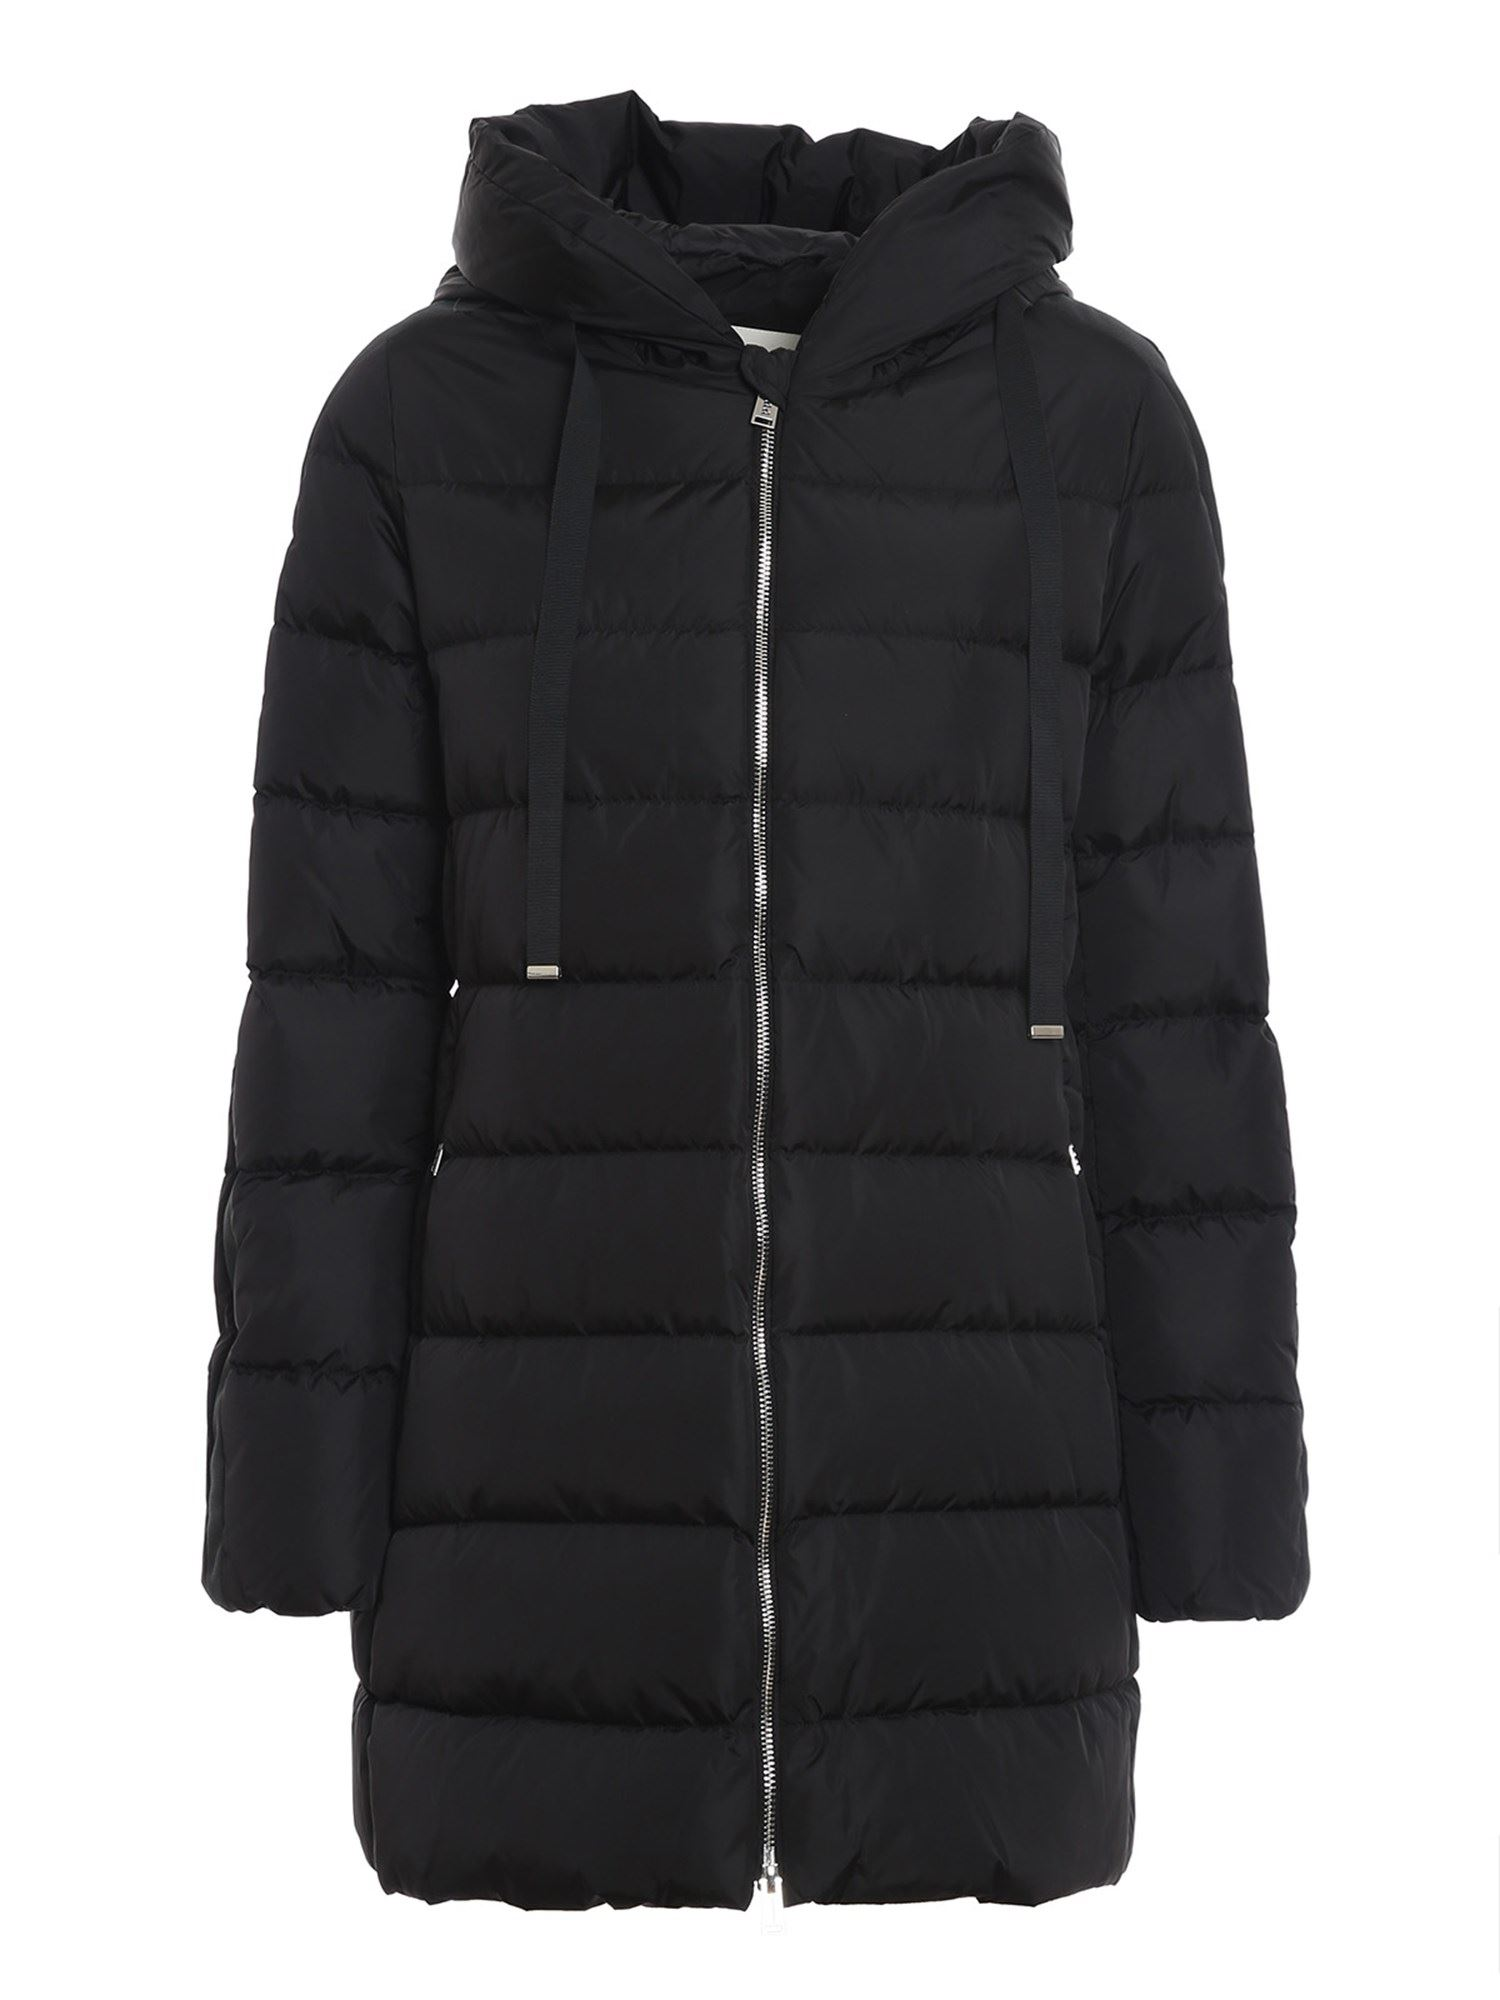 ADD ADD MATT EFFECT BLACK PUFFER JACKET